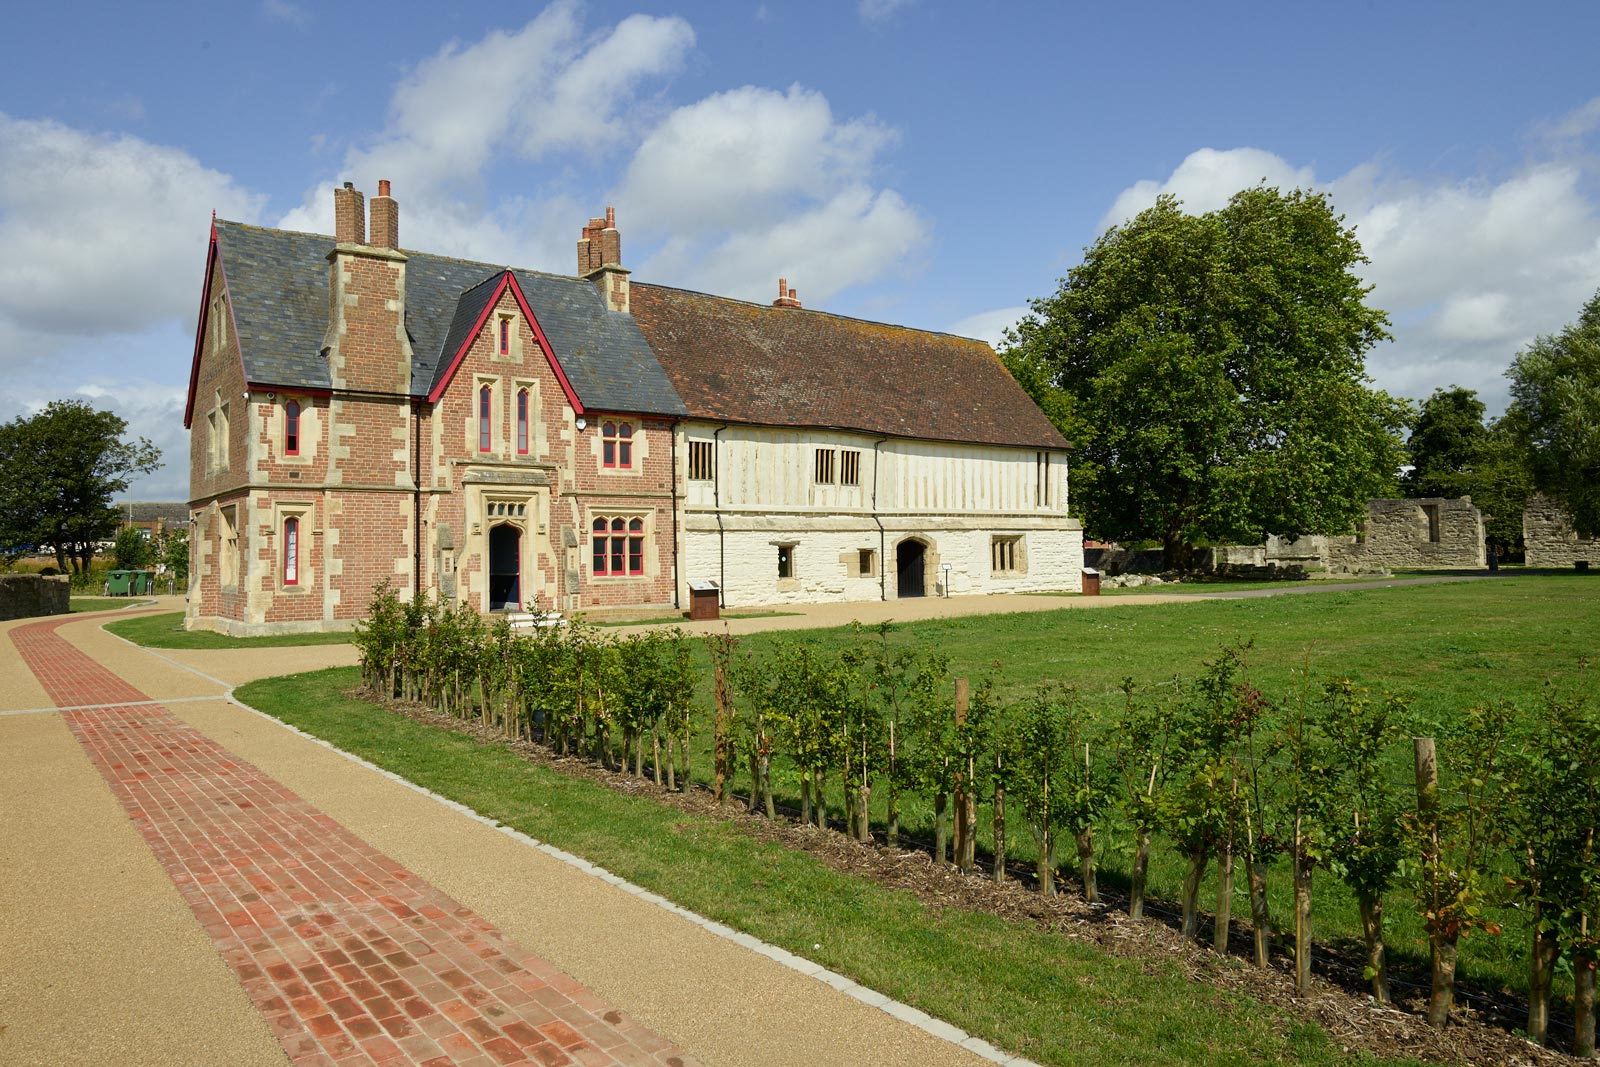 Venue Hire Gloucester - hall hire in medieval space